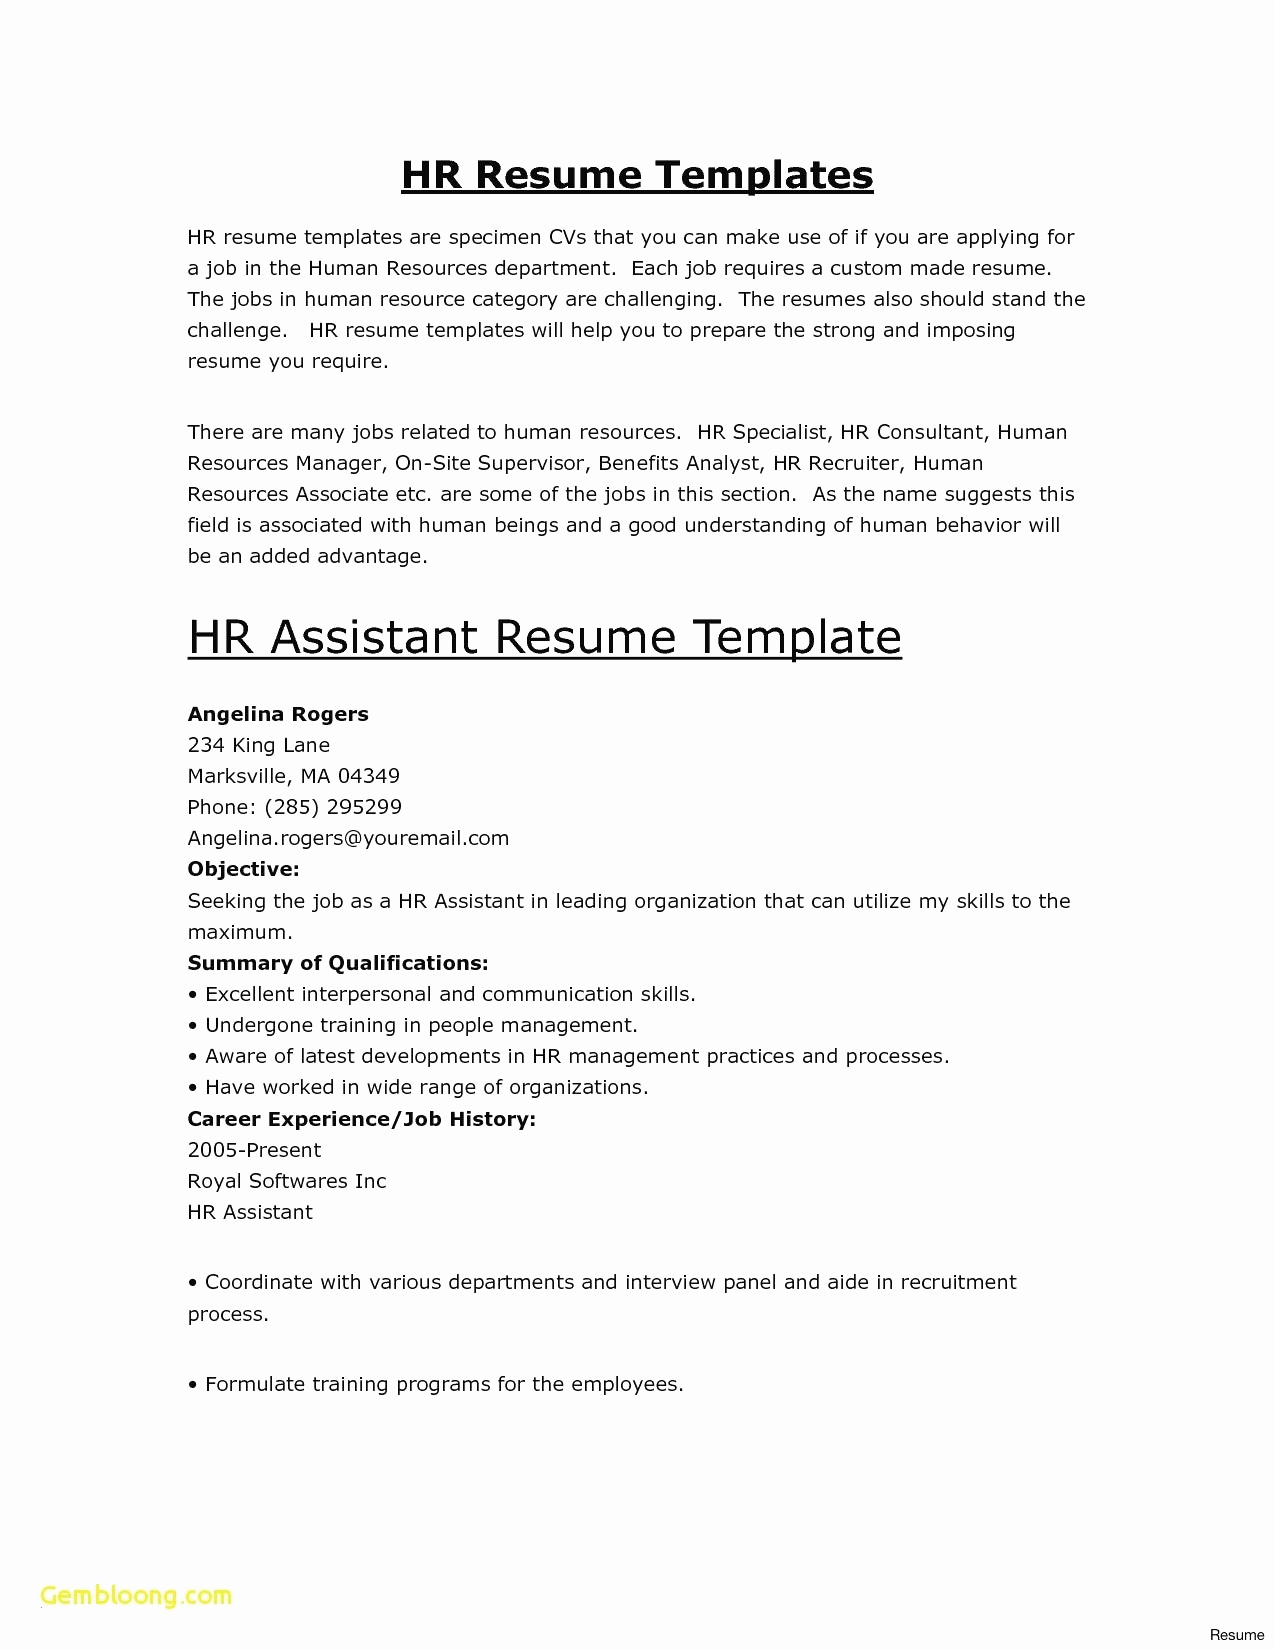 Whats A Good Wpm for A Resume - Whats A Good Wpm for A Resume Unique Whats A Good Wpm for A Resume